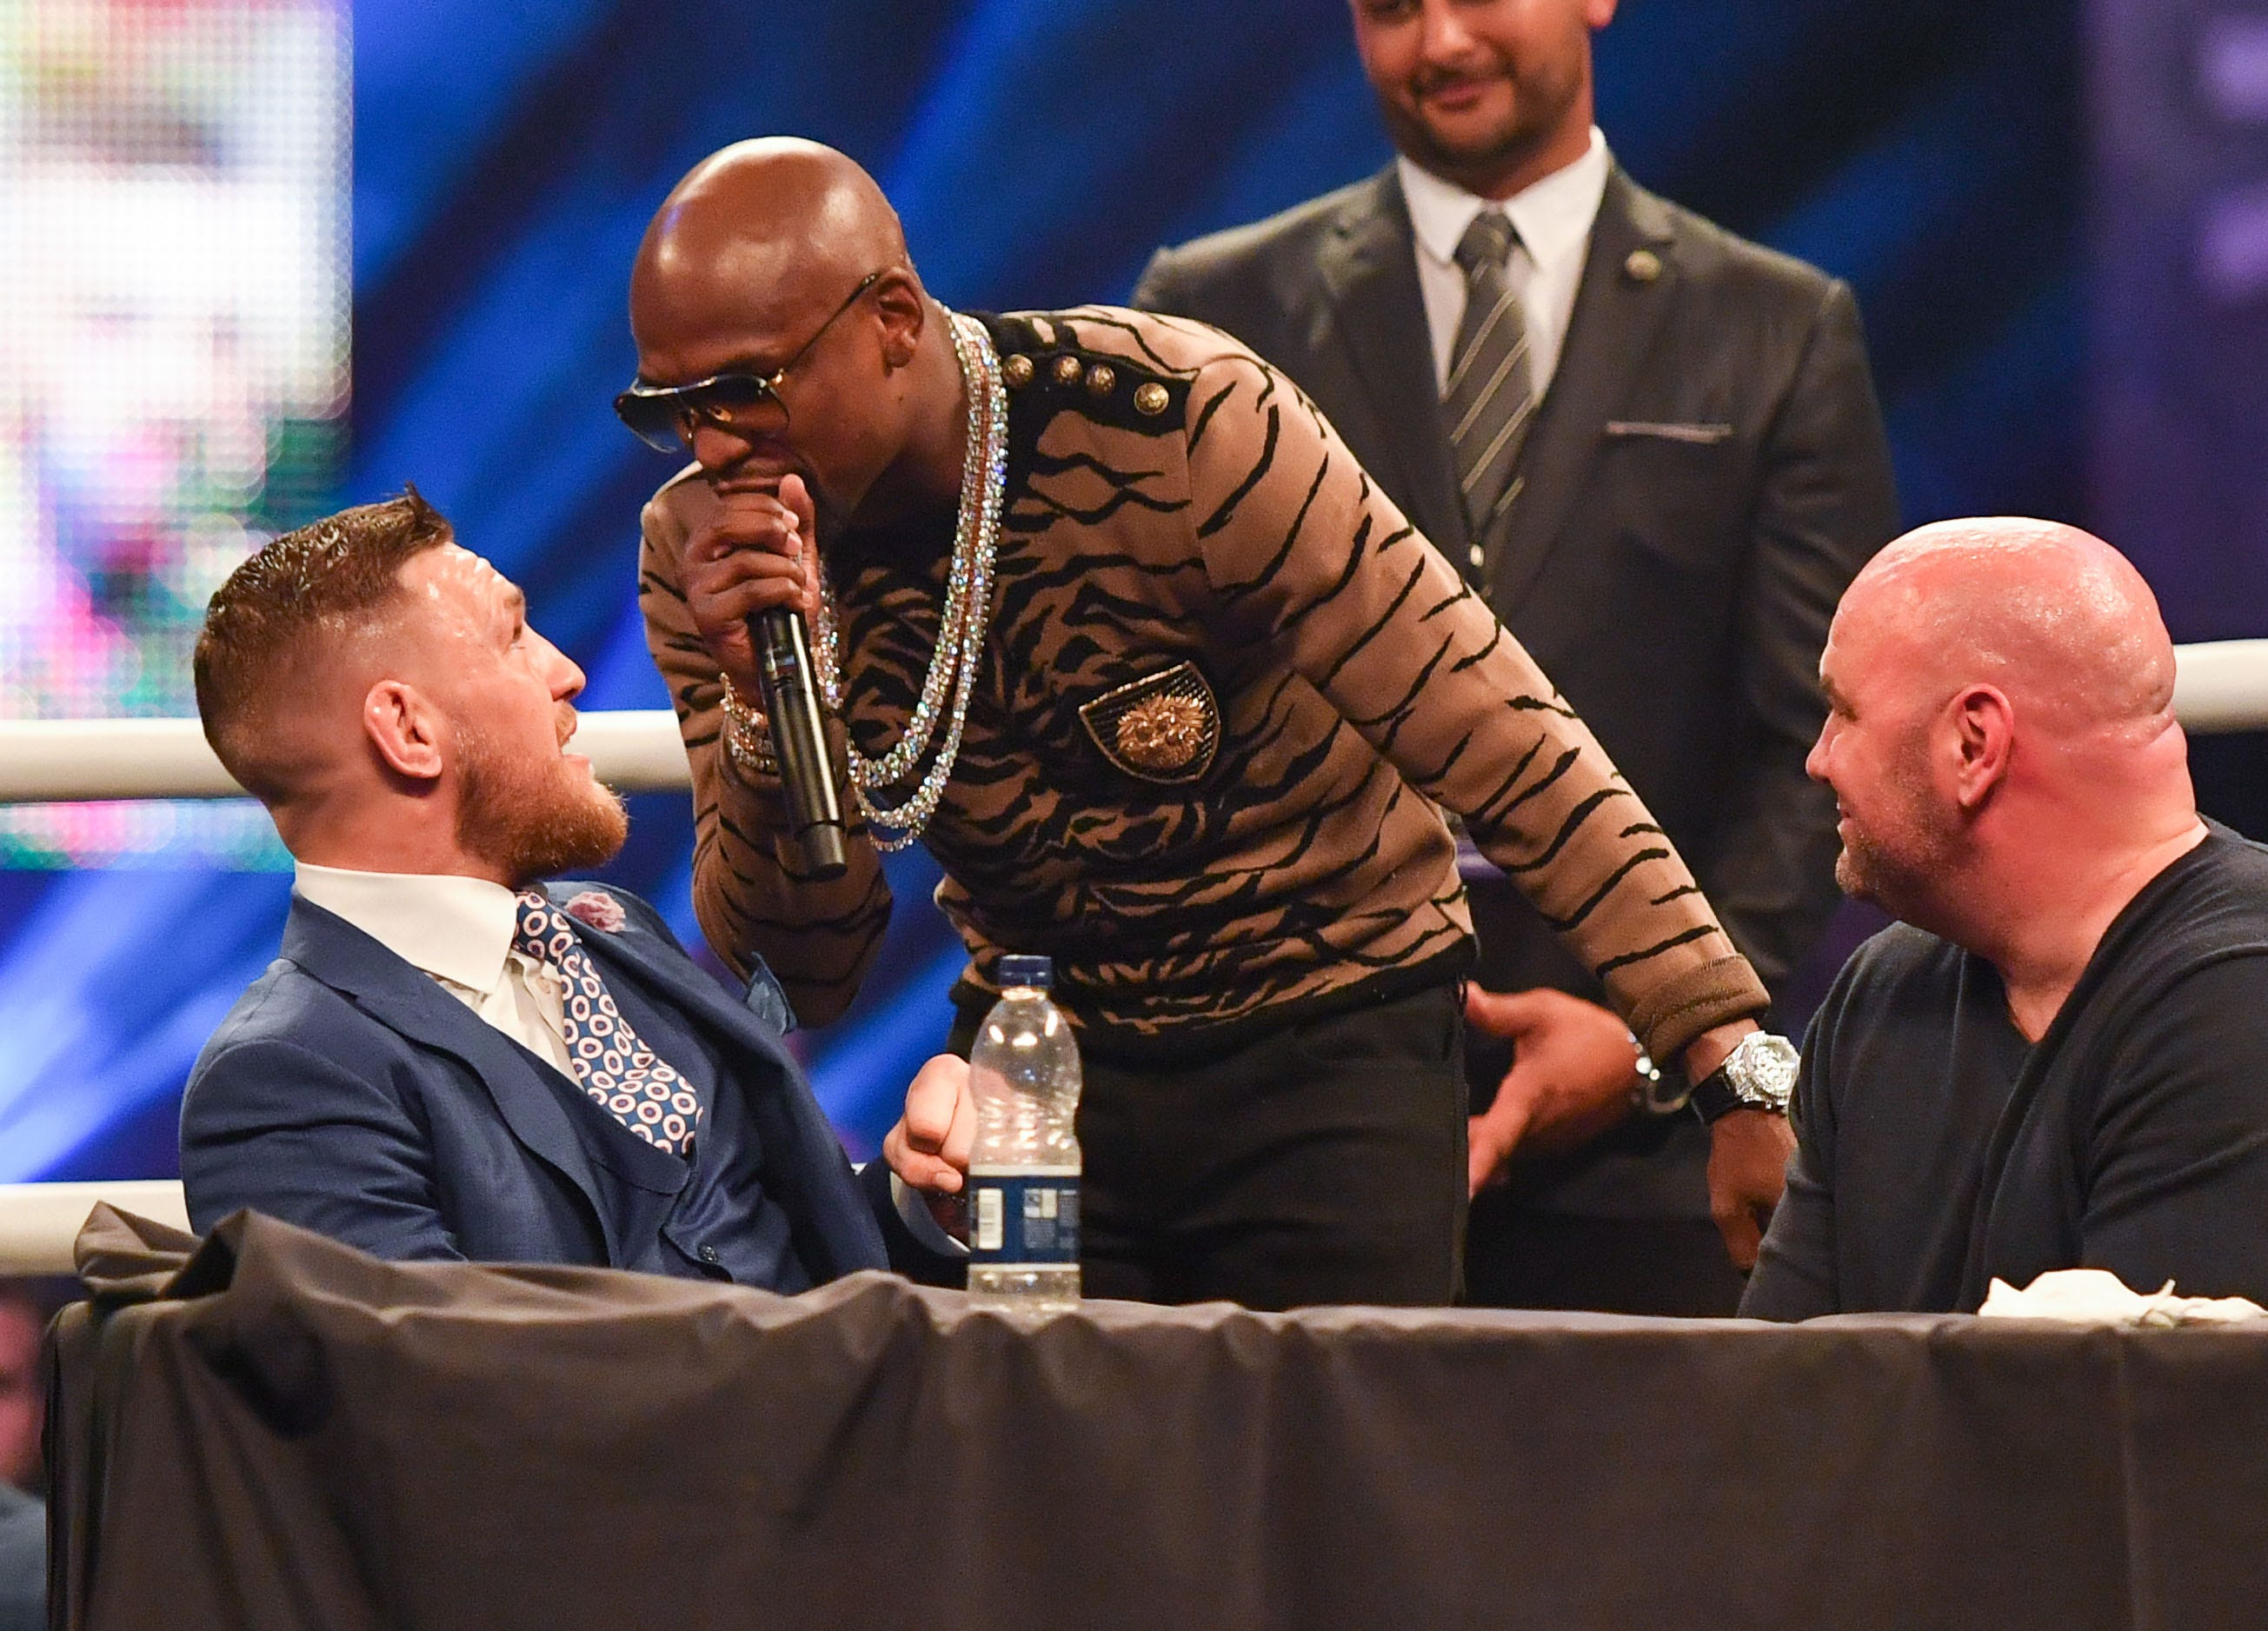 636356546224430164-USATSI-10159212-1- Floyd Mayweather calls Conor McGregor anti-gay slur as world tour concludes in London